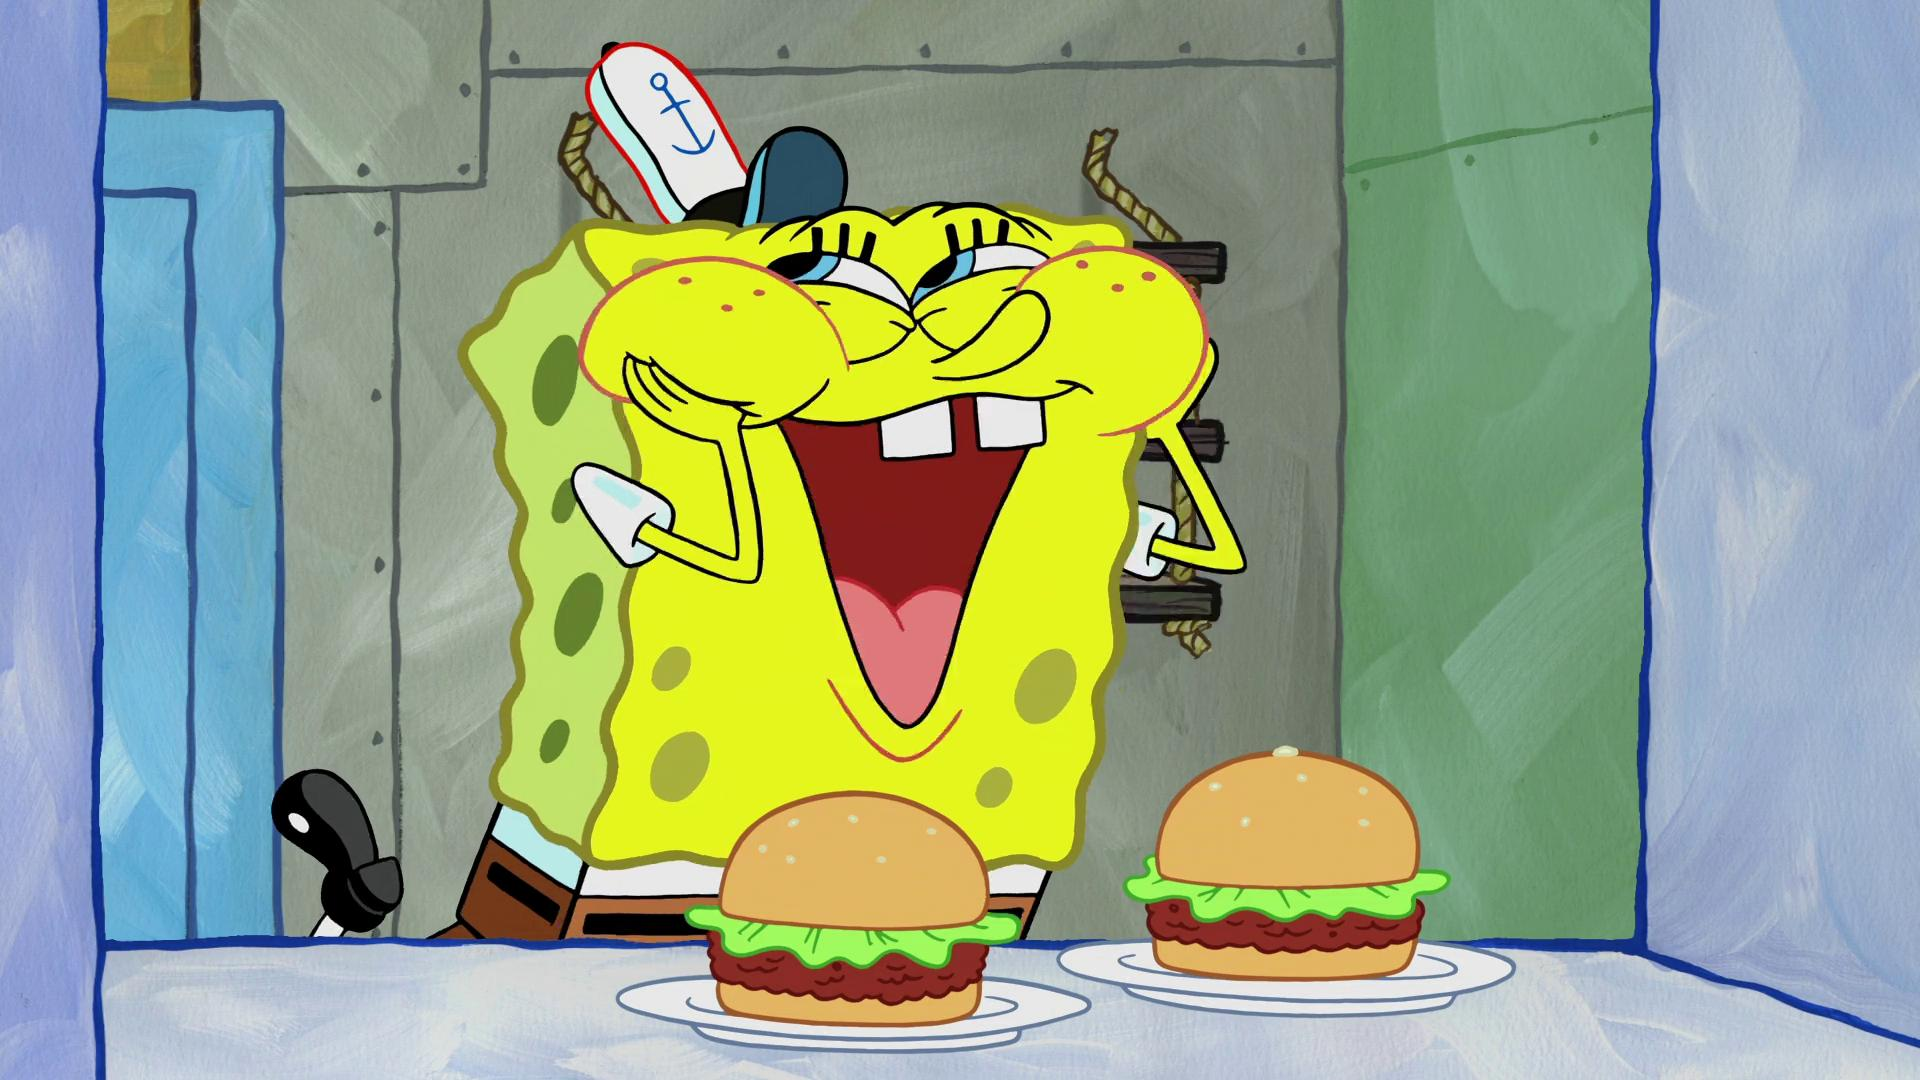 The secret ingredient in a Krabby Patty from SpongeBob SquarePants is crab meat.